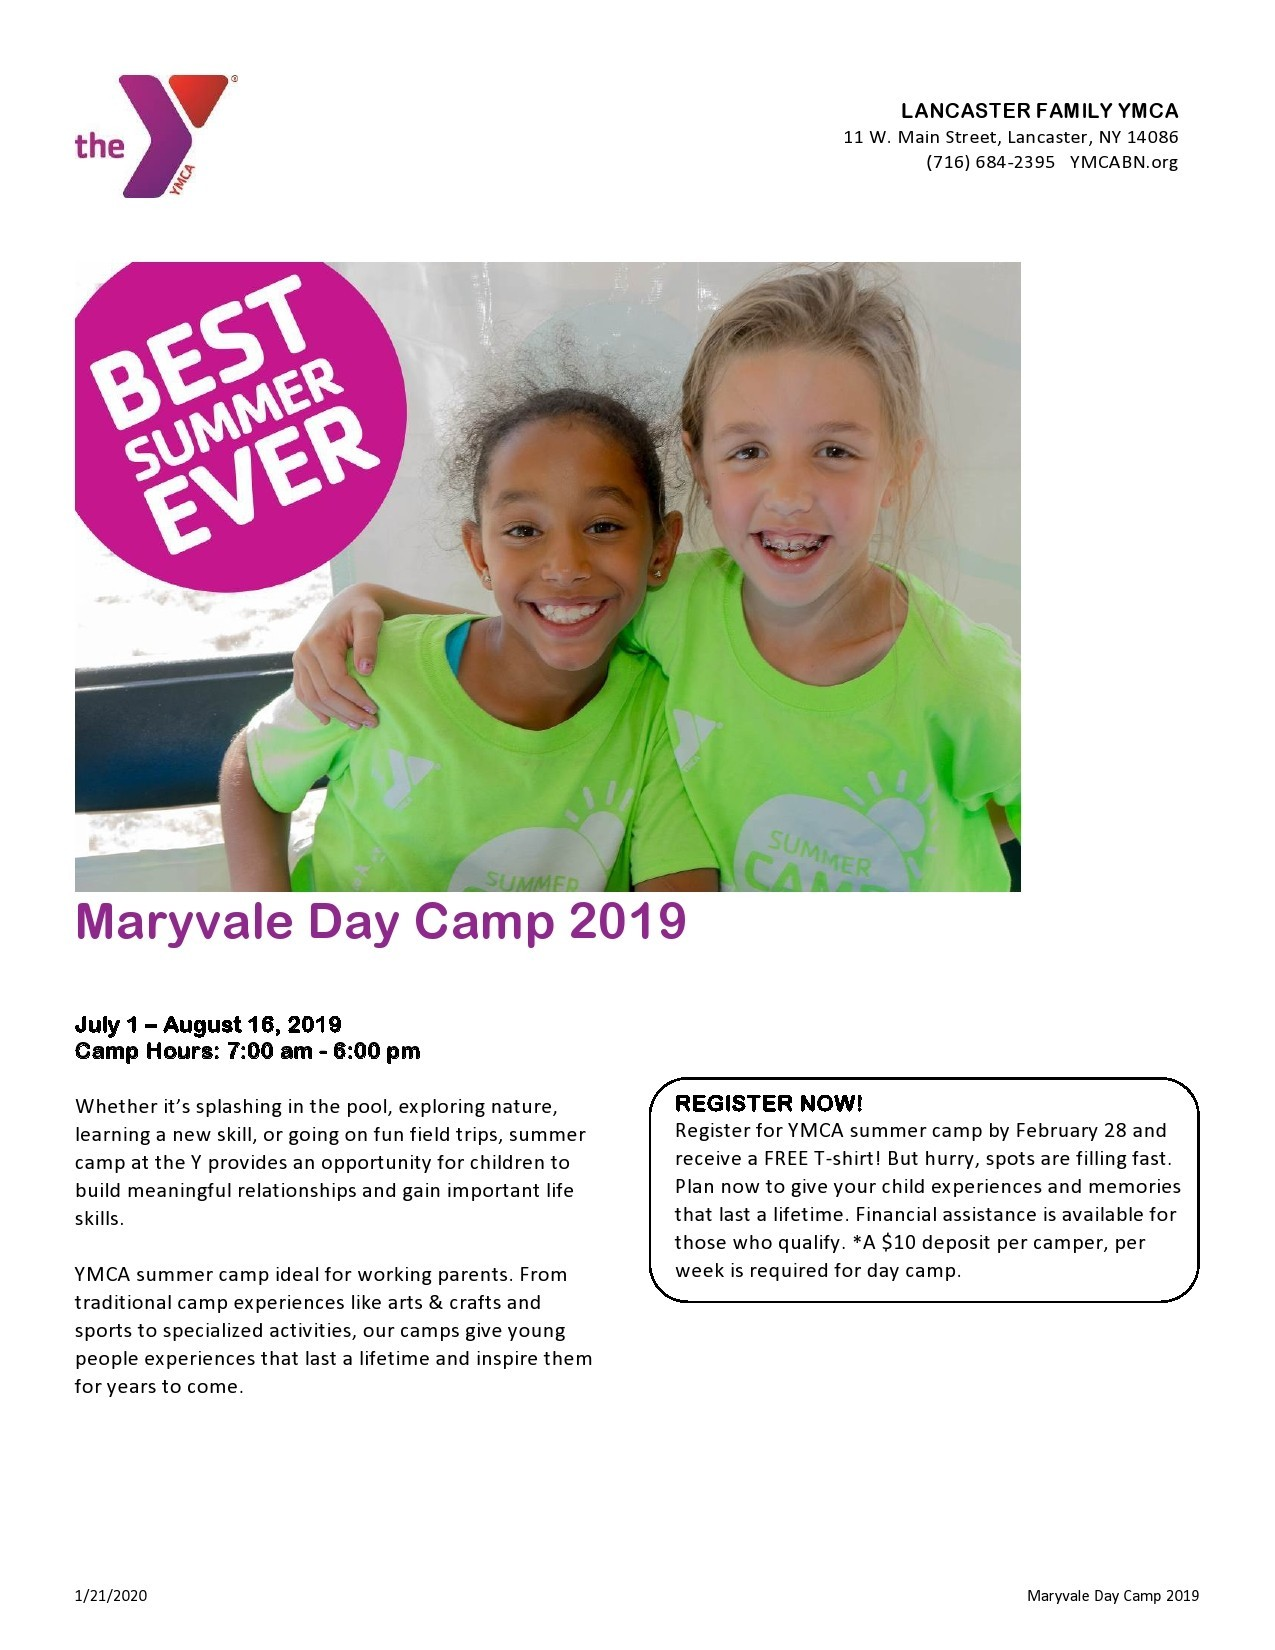 Free summer camp flyer 22